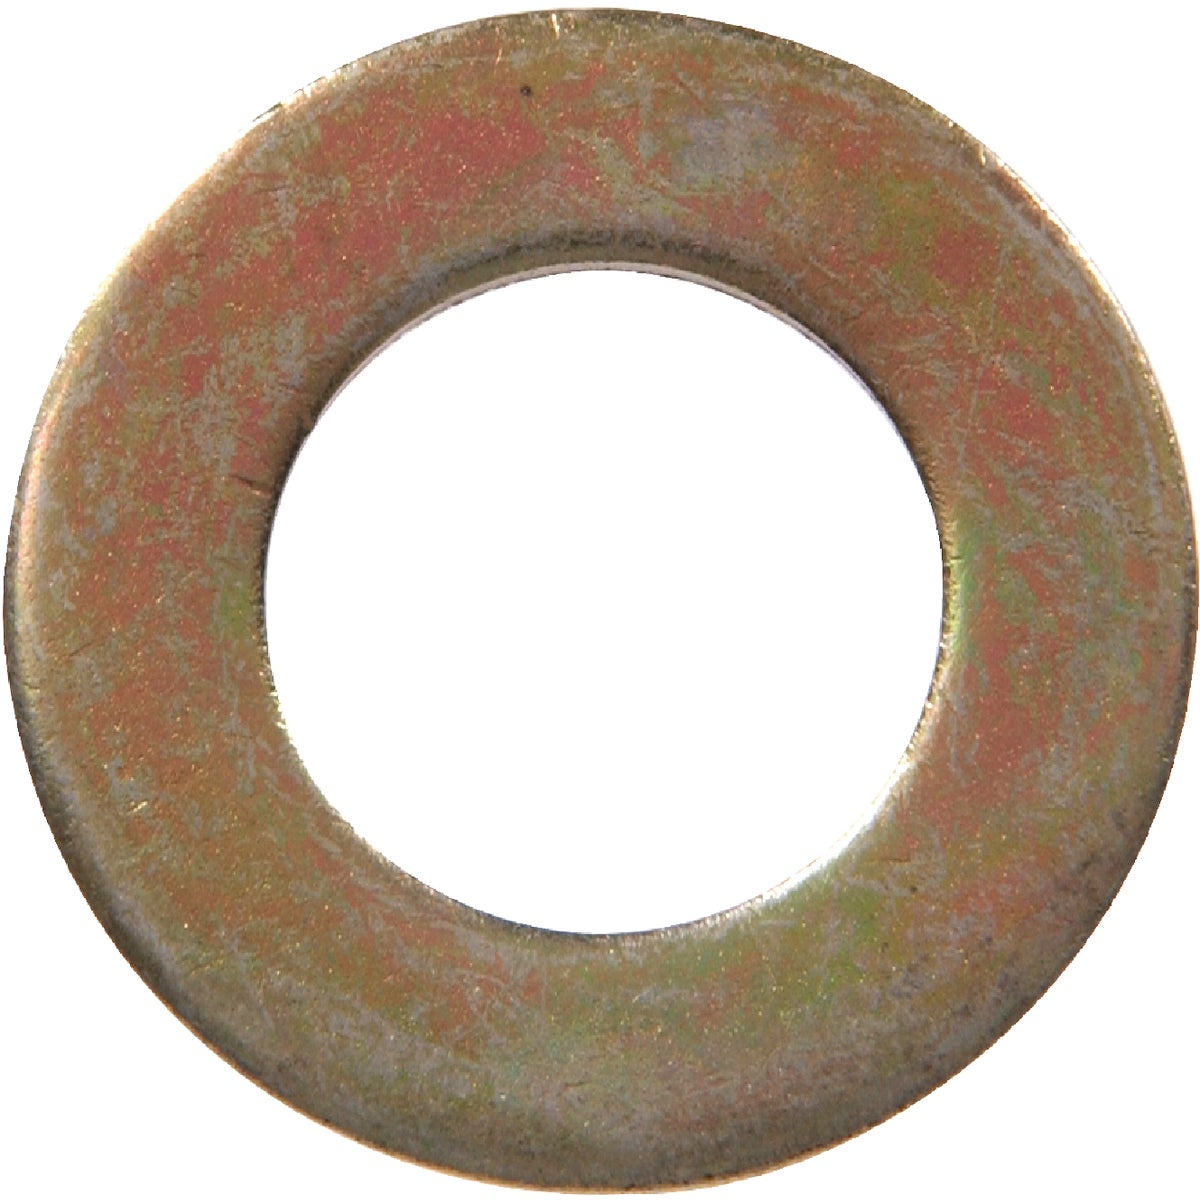 "1/4"" SAE FLAT WASHER - 280320 by Hillman Fastener"